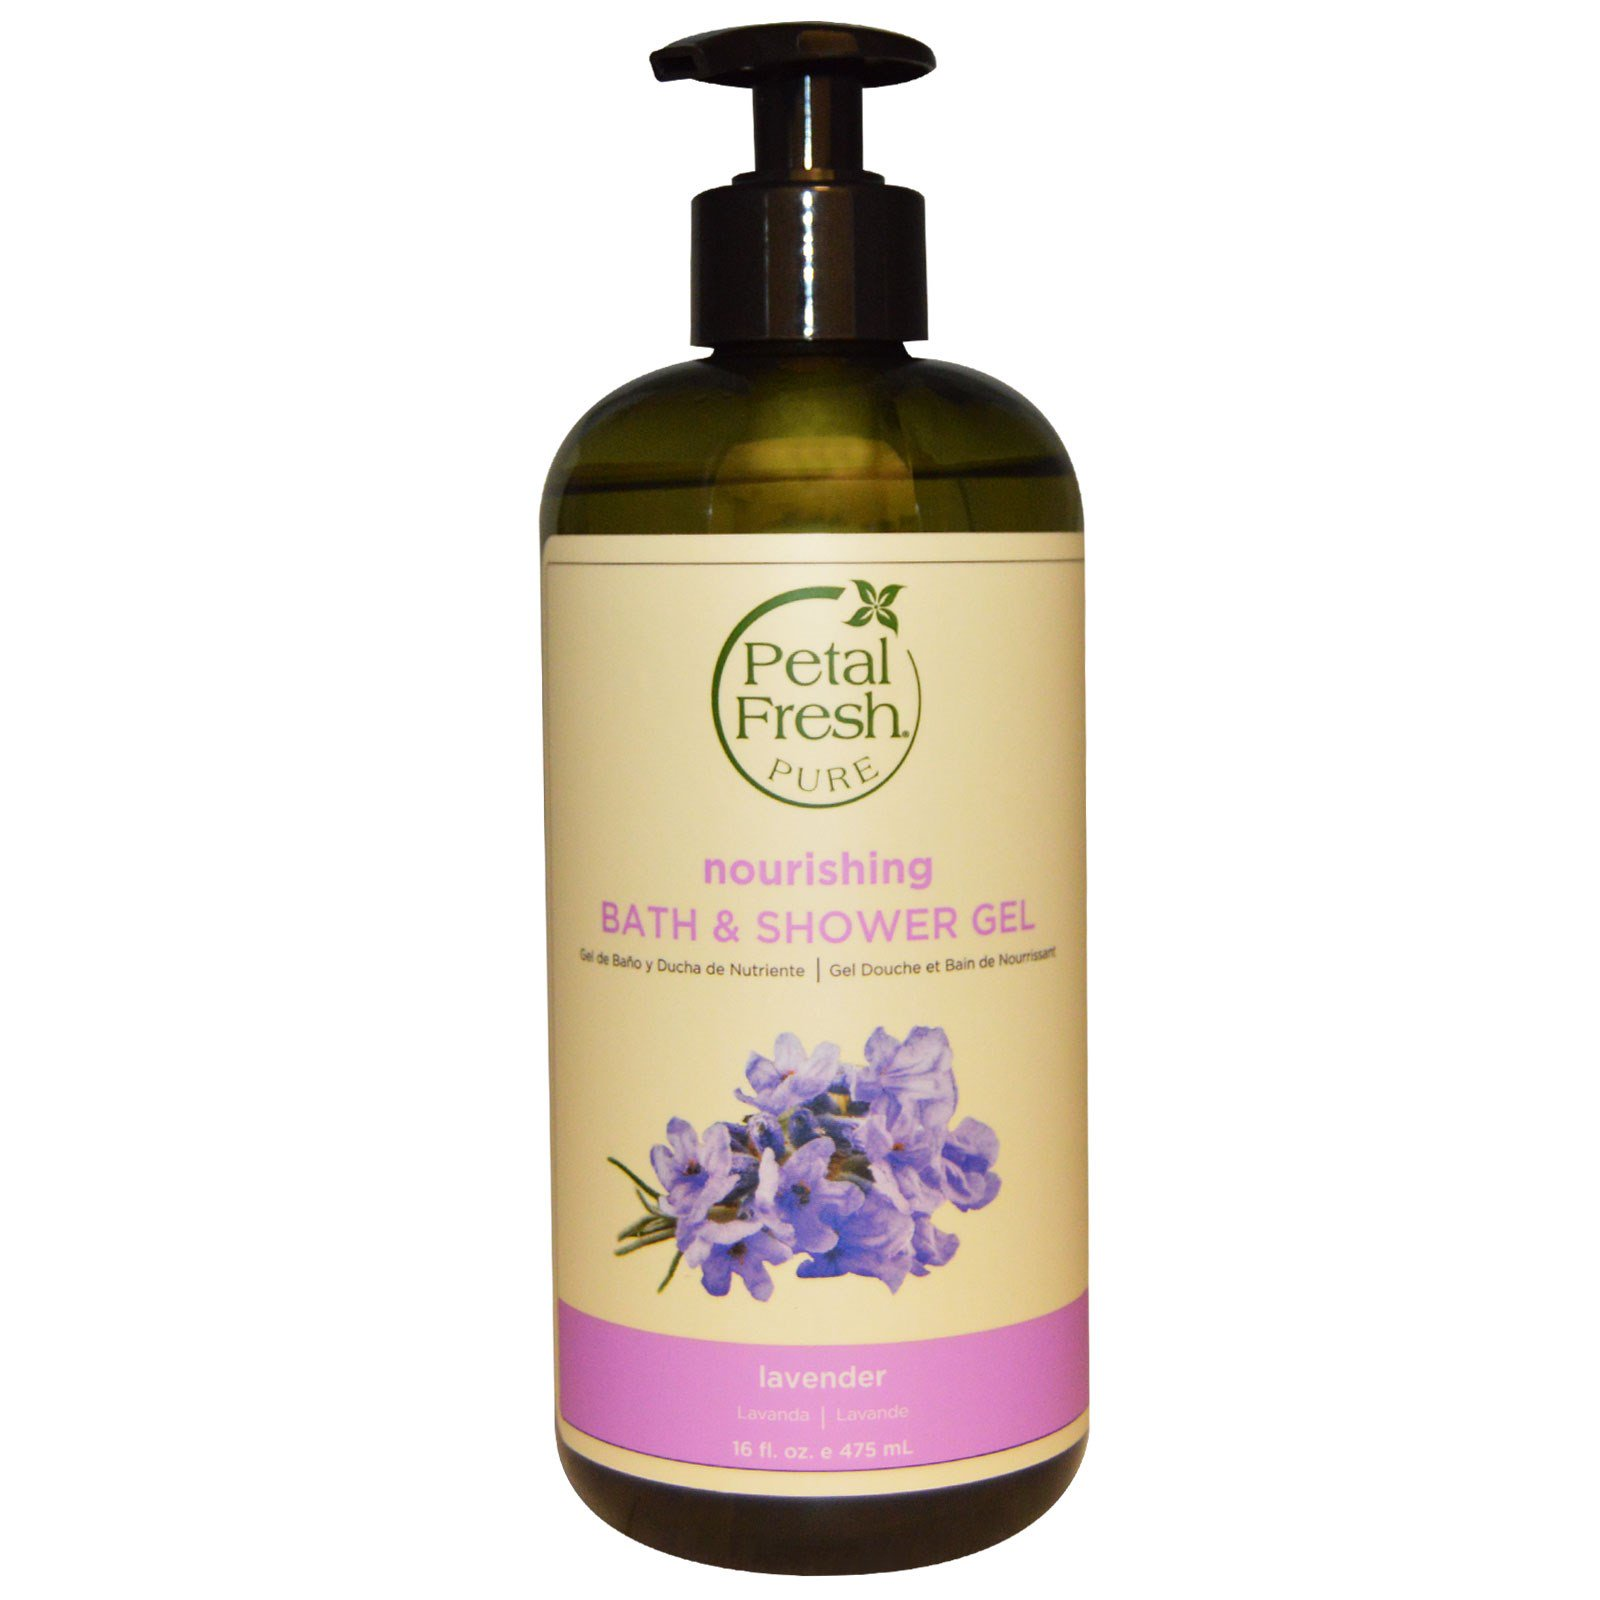 Petal Fresh, Pure, Bath & Shower Gel, Nourishing, Lavender, 16 fl oz (475 ml)